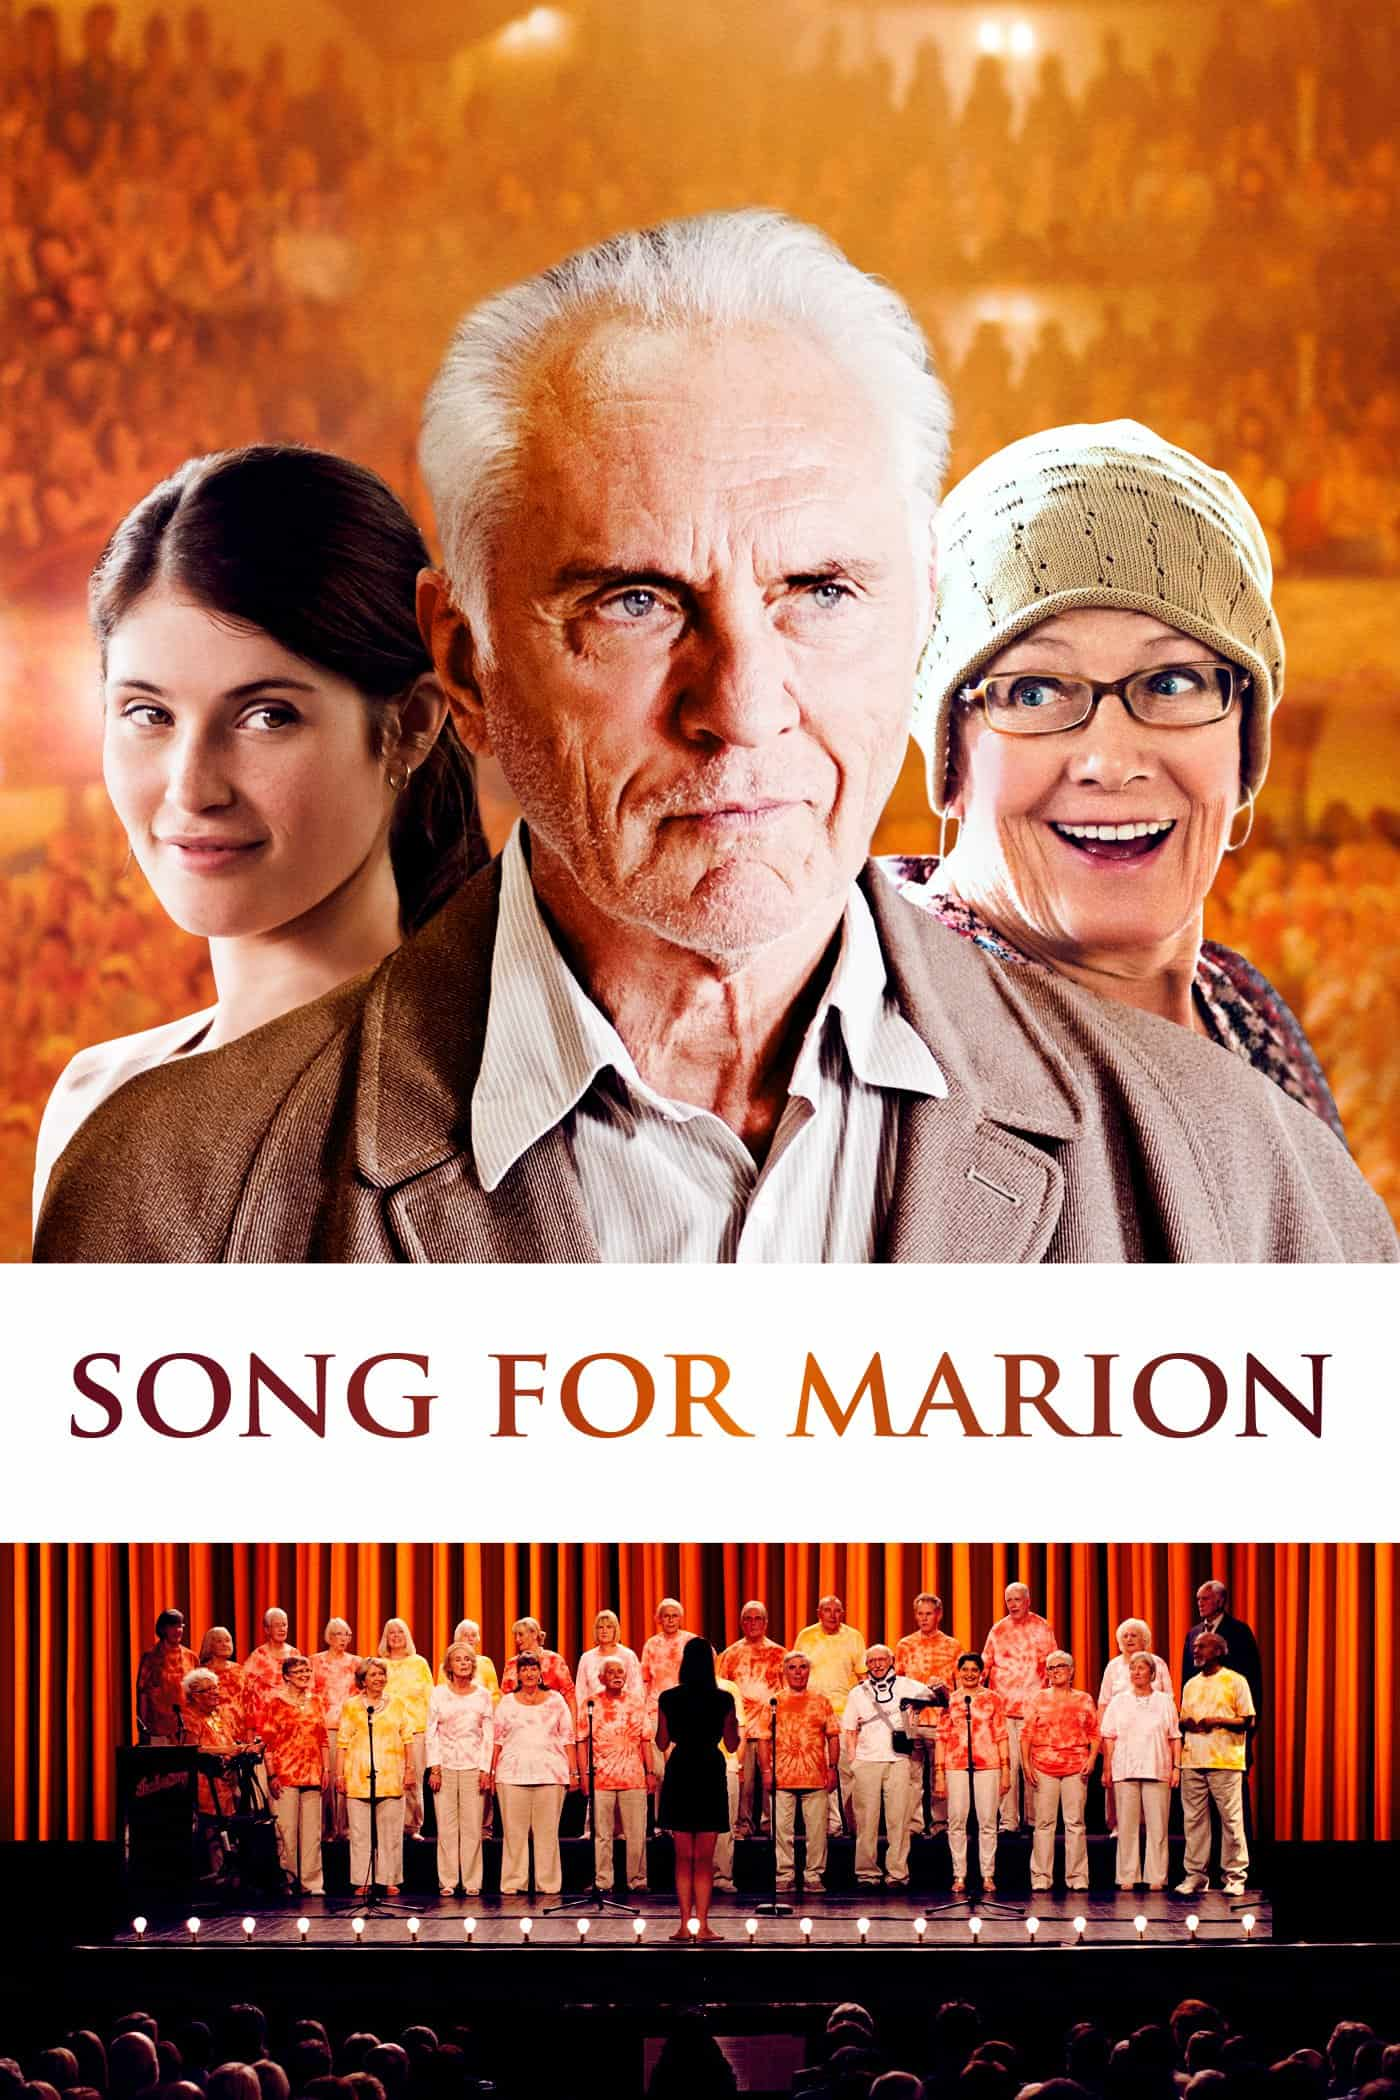 Song for Marion, 2012